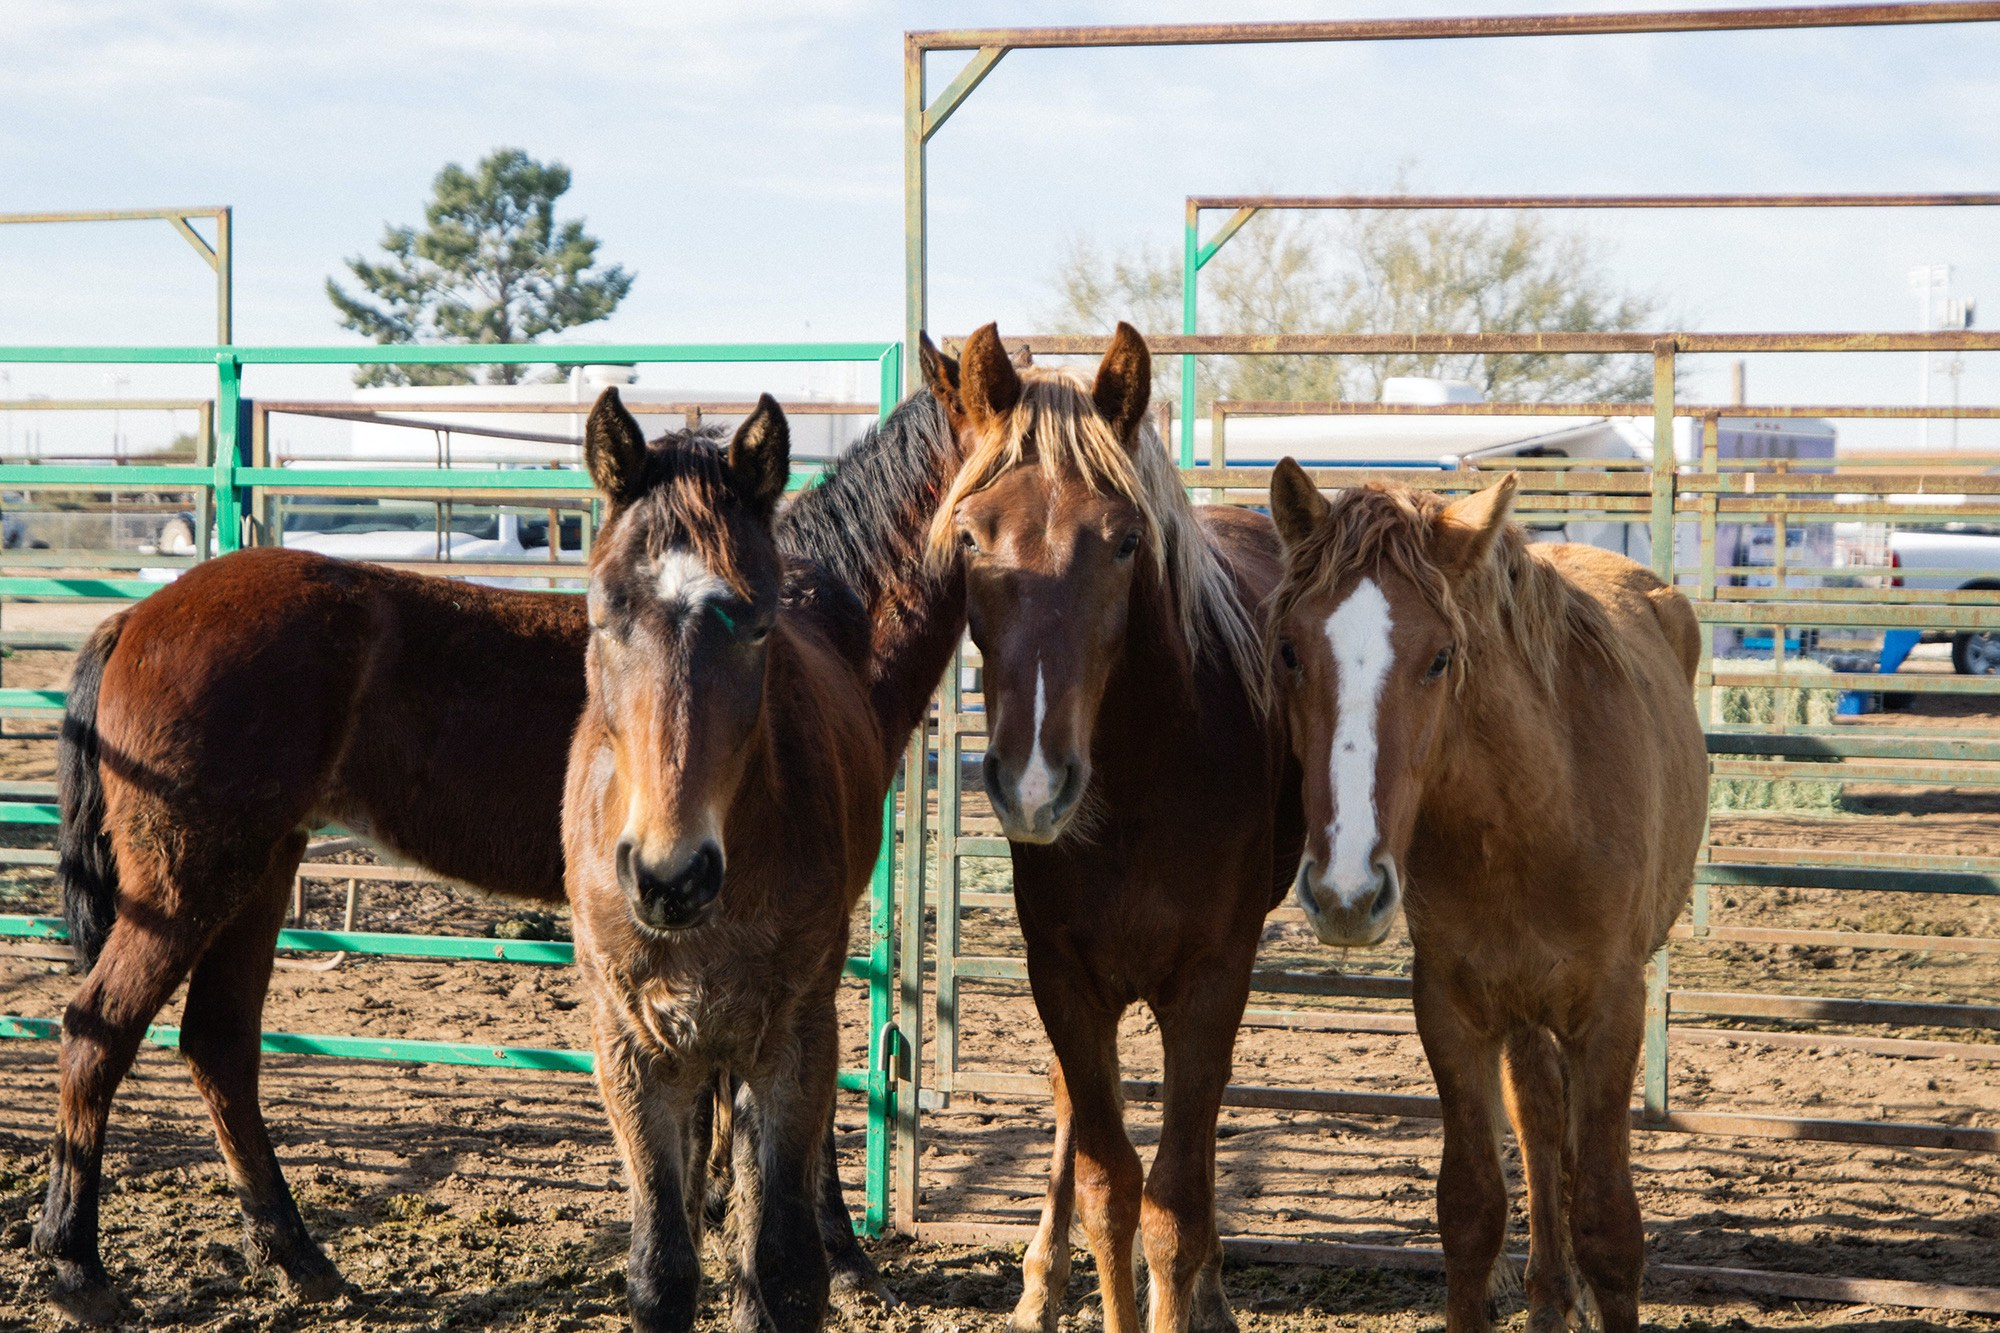 Feds offer financial incentive to help find homes for wild horses and burros